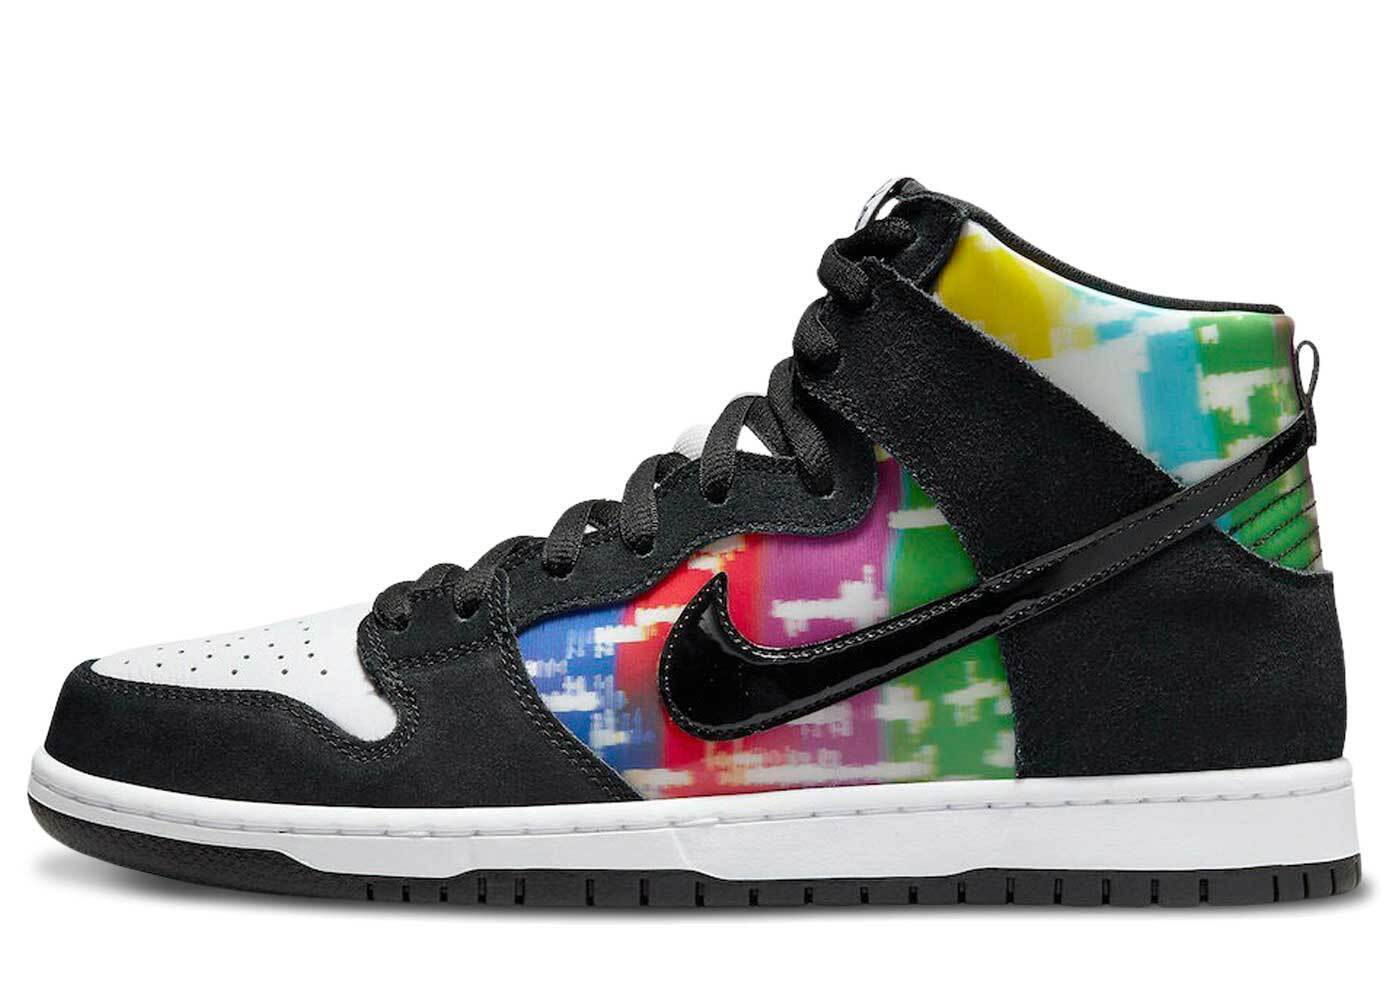 Nike SB Dunk High TV Signalの写真